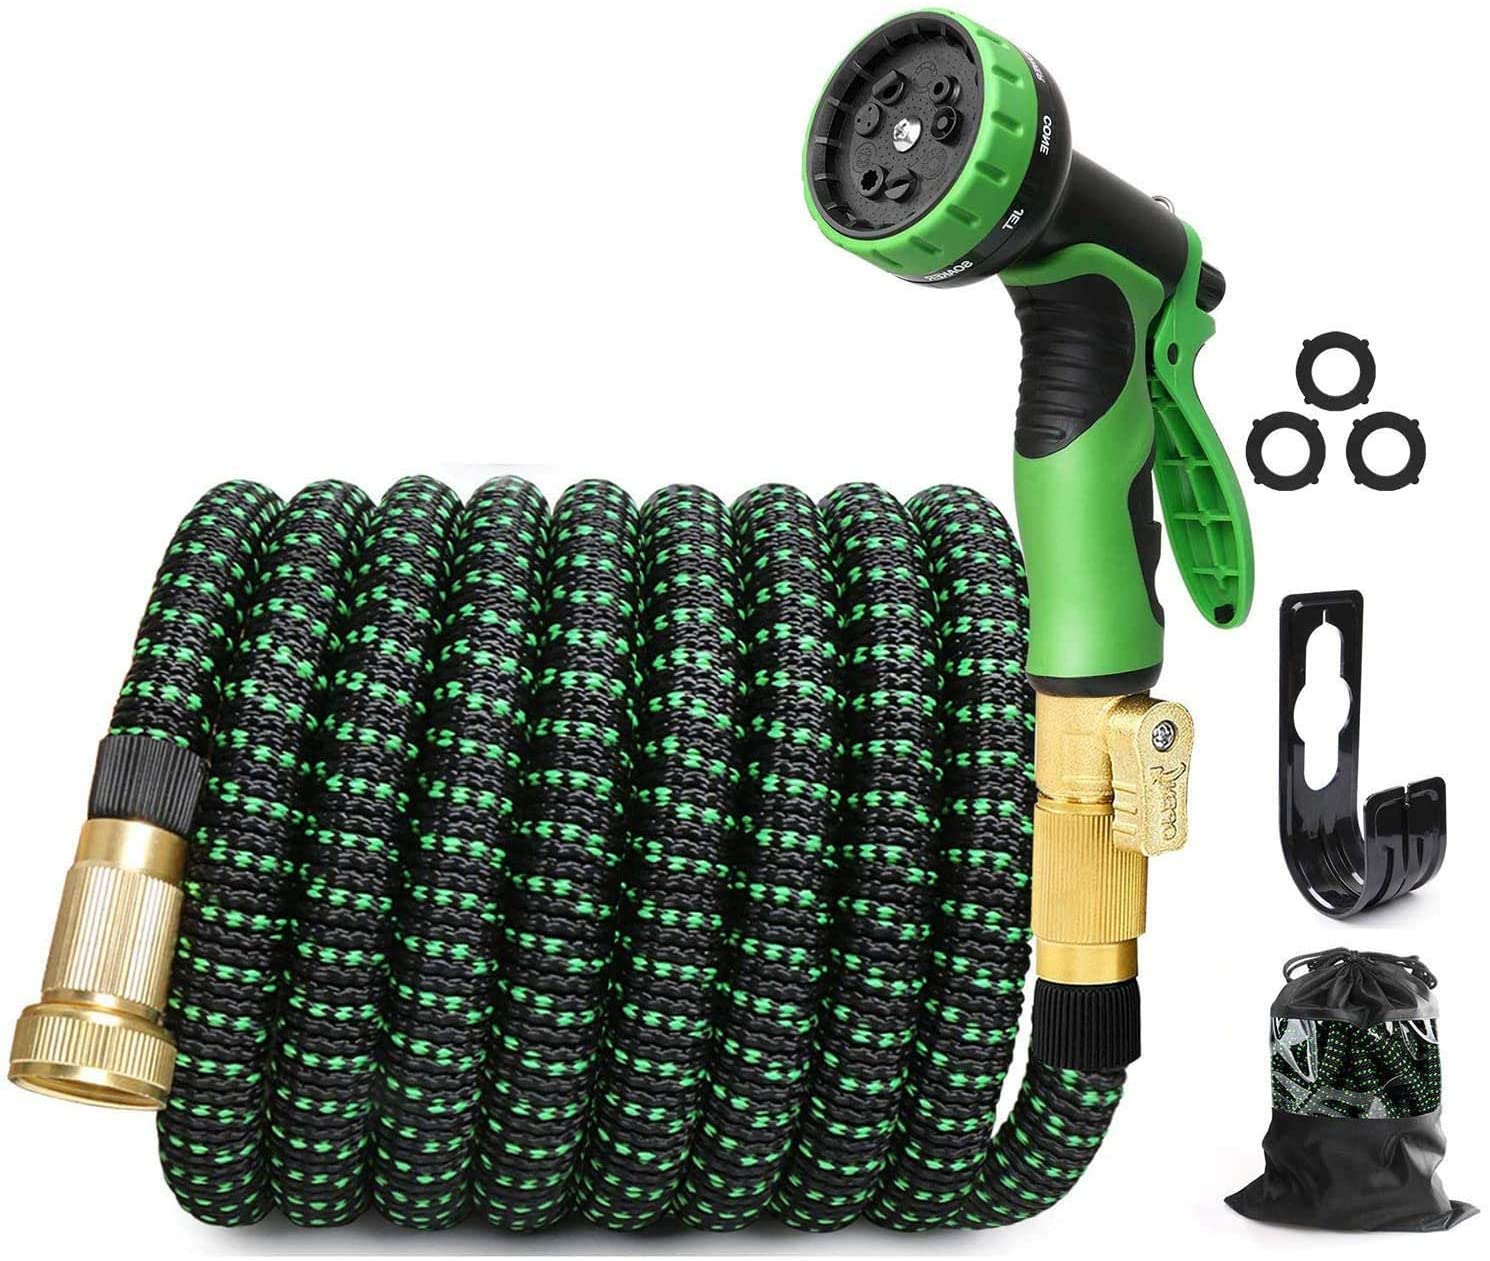 EASYHOSE 100ft Expandable Water Garden Hose